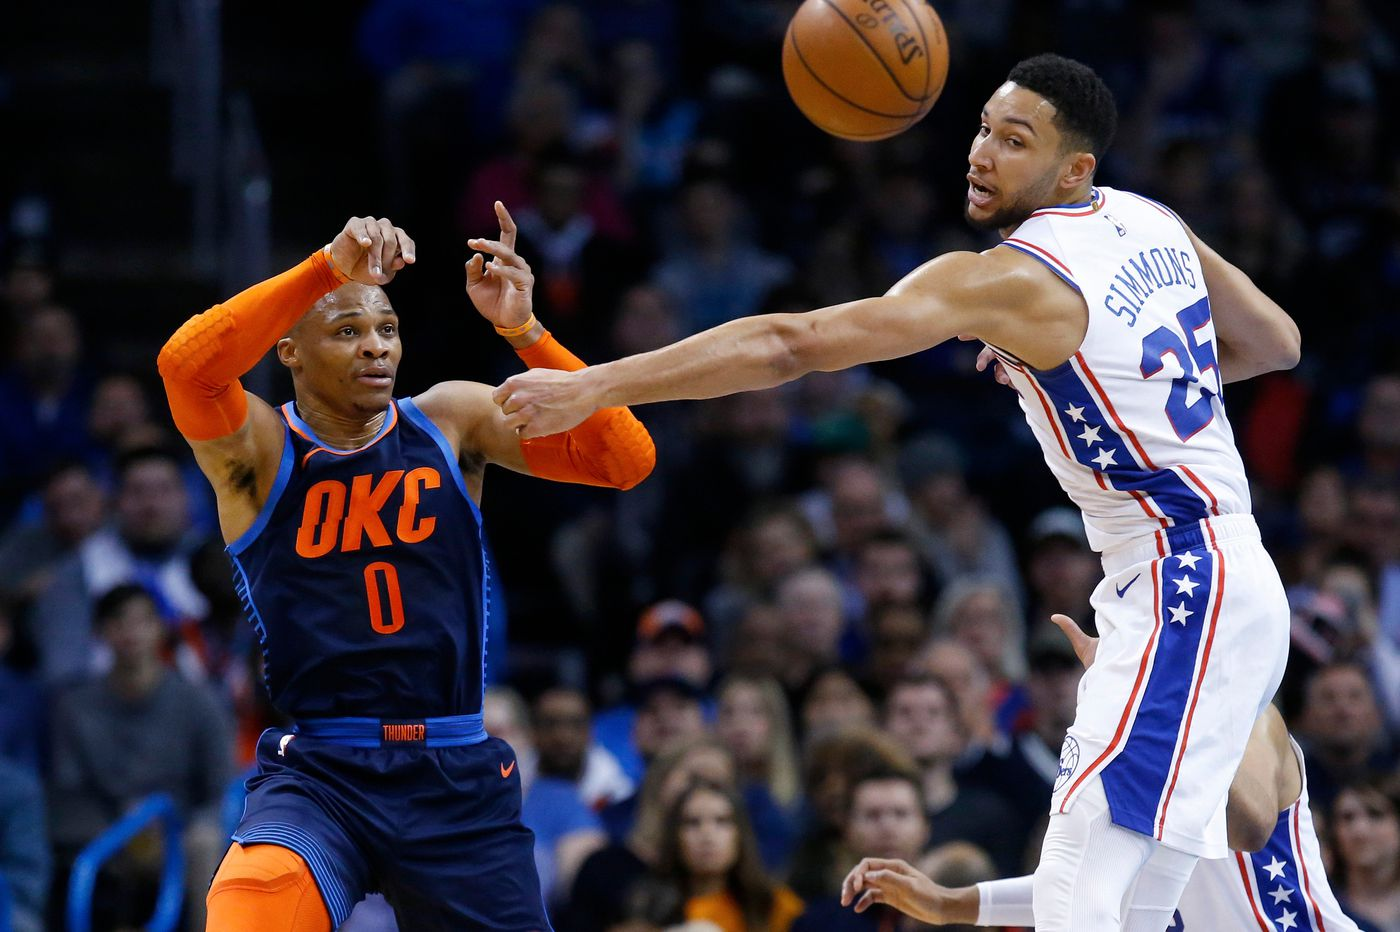 Sixers beat Oklahoma City Thunder to snap series losing streak behind Tobias Harris, Ben Simmons